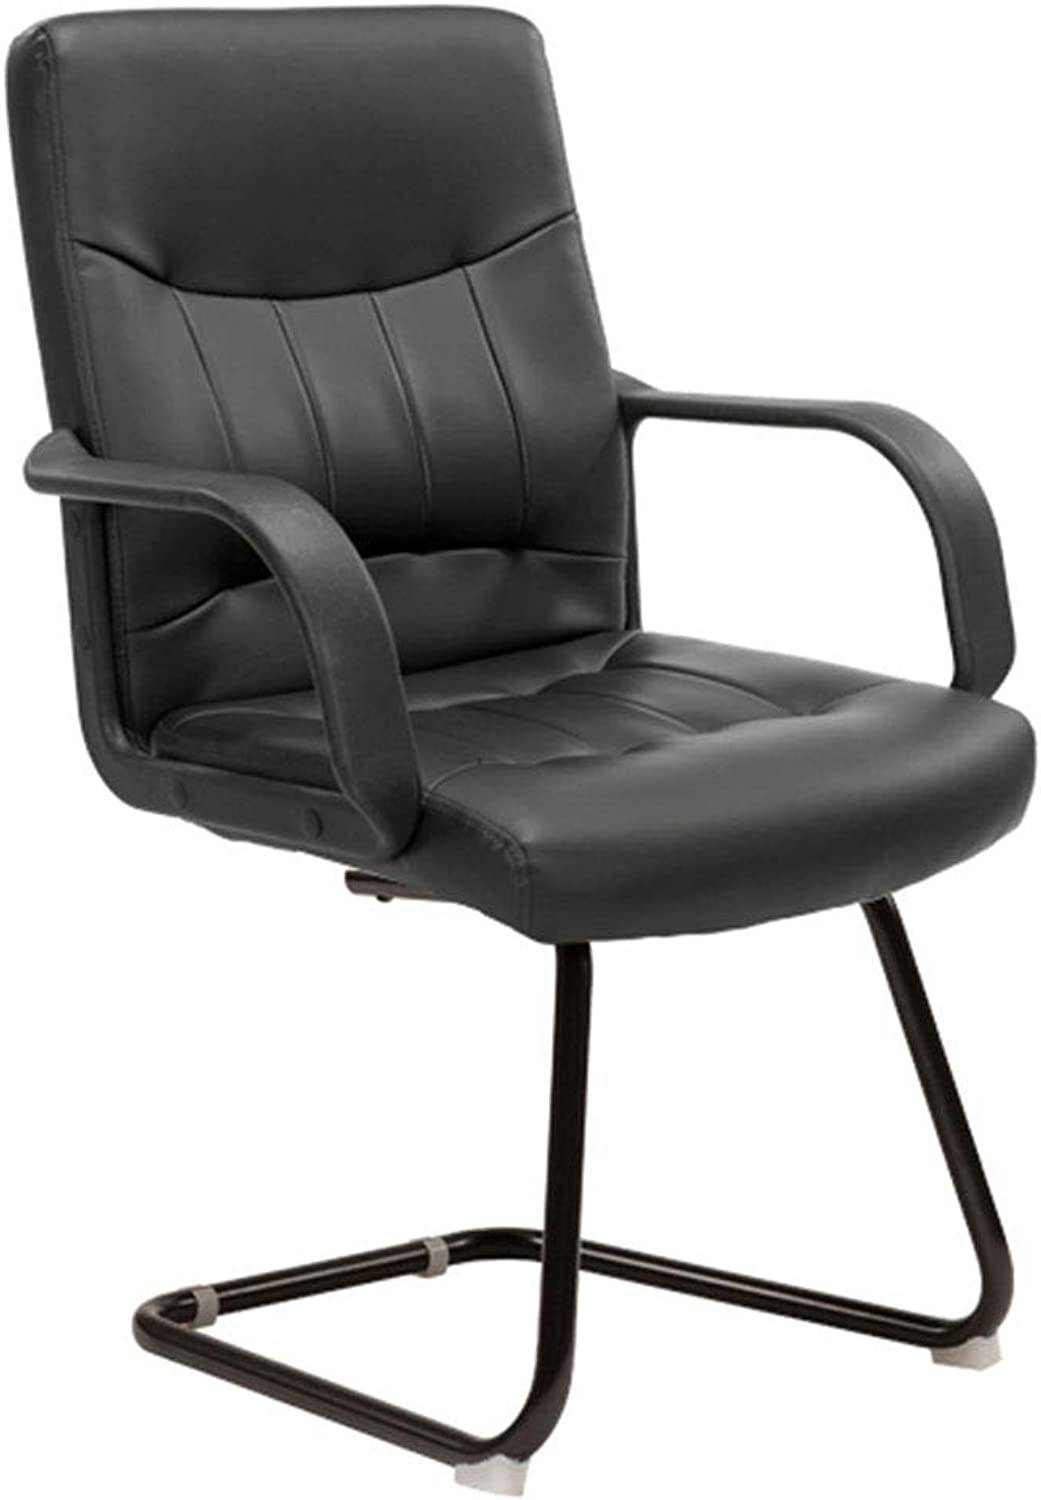 Office Chair Computer Chair Home Office Chair Bow Leather Chair Staff Conference Chair Student Dormitory Chair Mahjong Chair Ergonomic Design, Fixed Handrail (color   Black, Size   48  54  105cm)